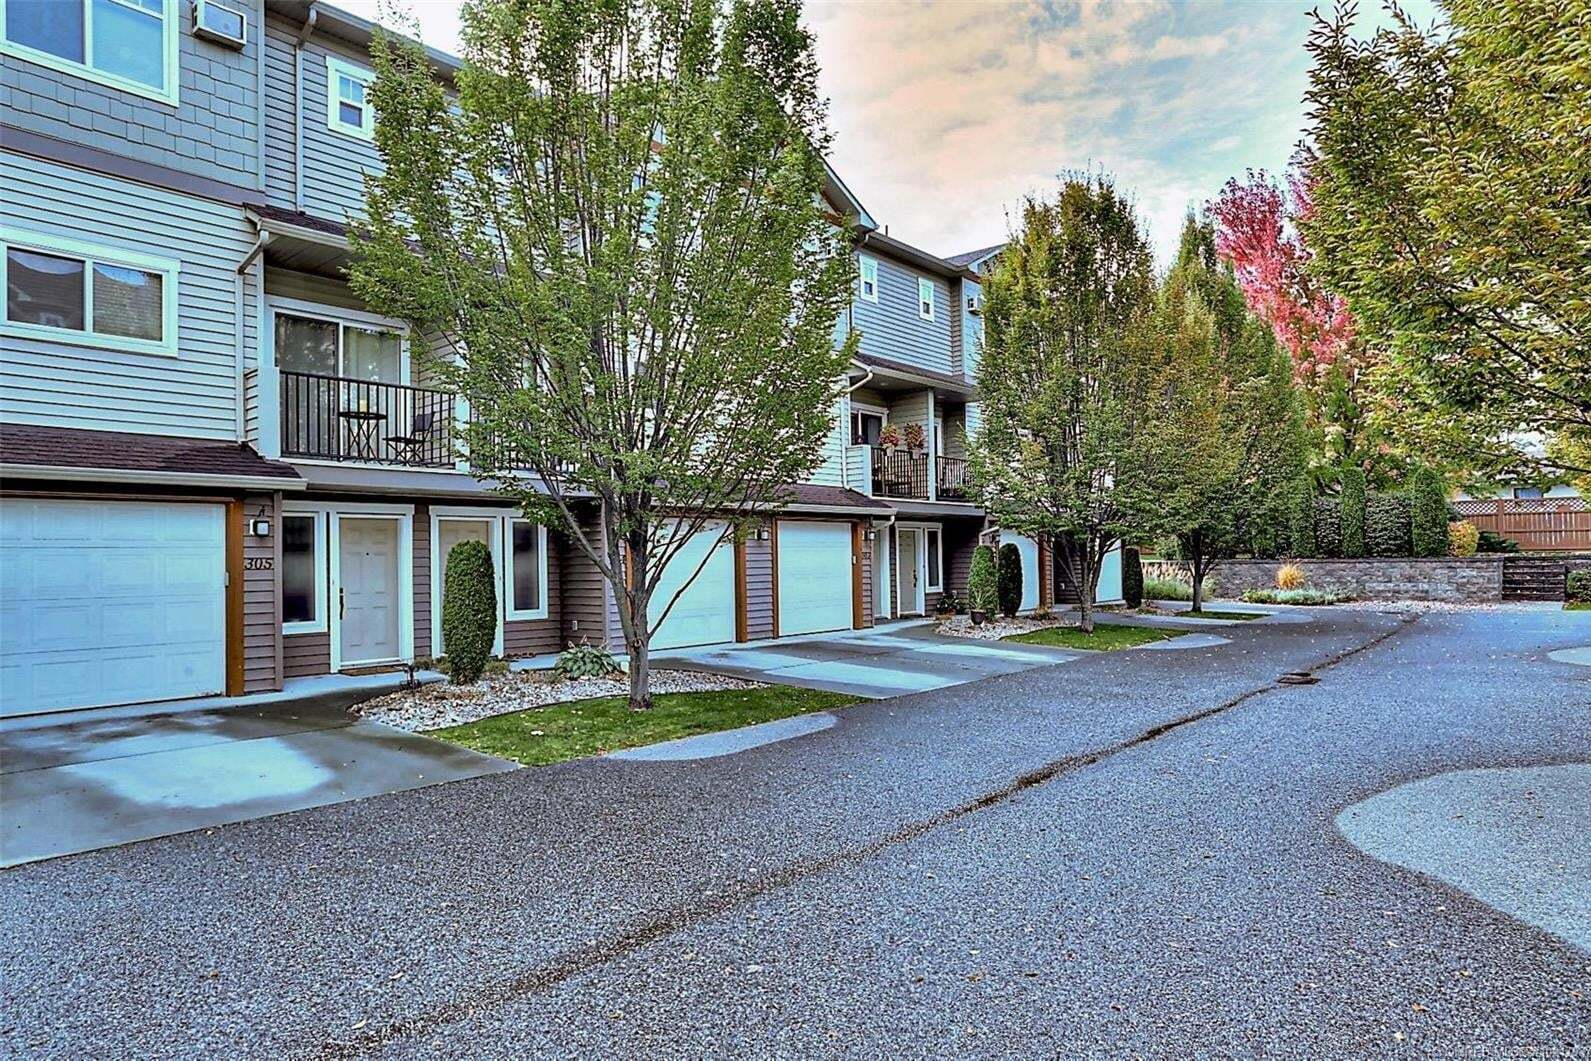 Townhouse for sale at 150 Mallach Rd Unit 303 Kelowna British Columbia - MLS: 10217937